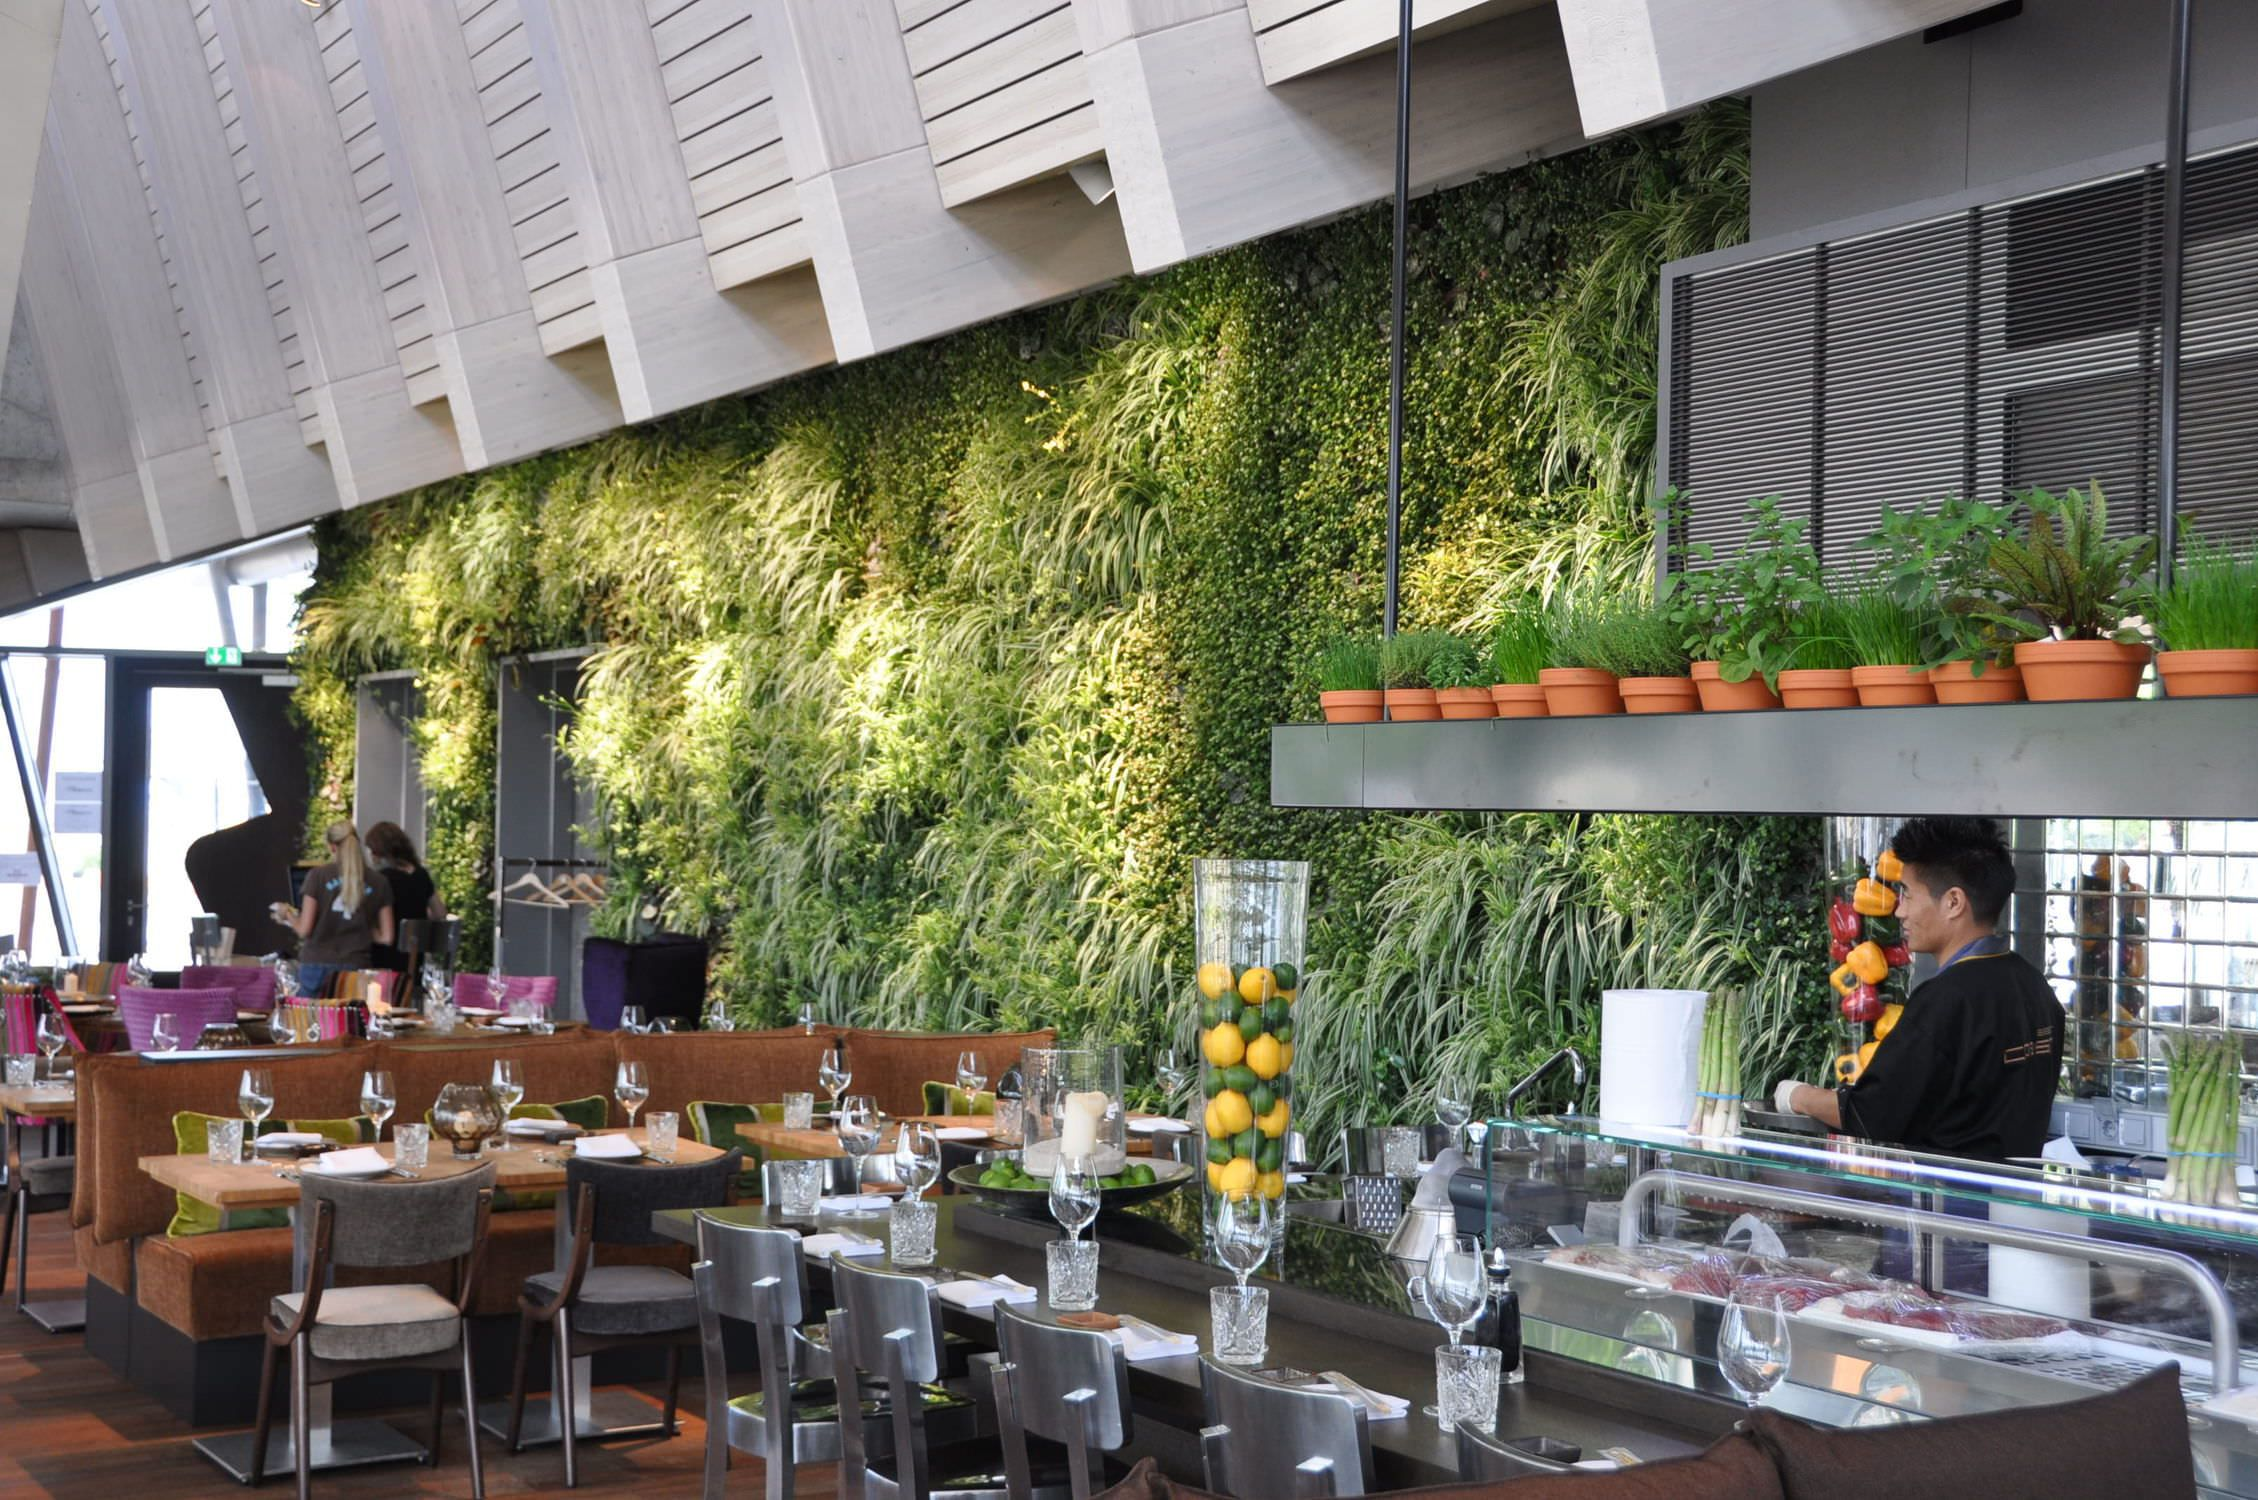 Modern Indoor Planters Designs To Your Home Garden Sophisticated Restaurant Interior Design Green Wall Small Pot Roof Ideas Awesome Natural Living